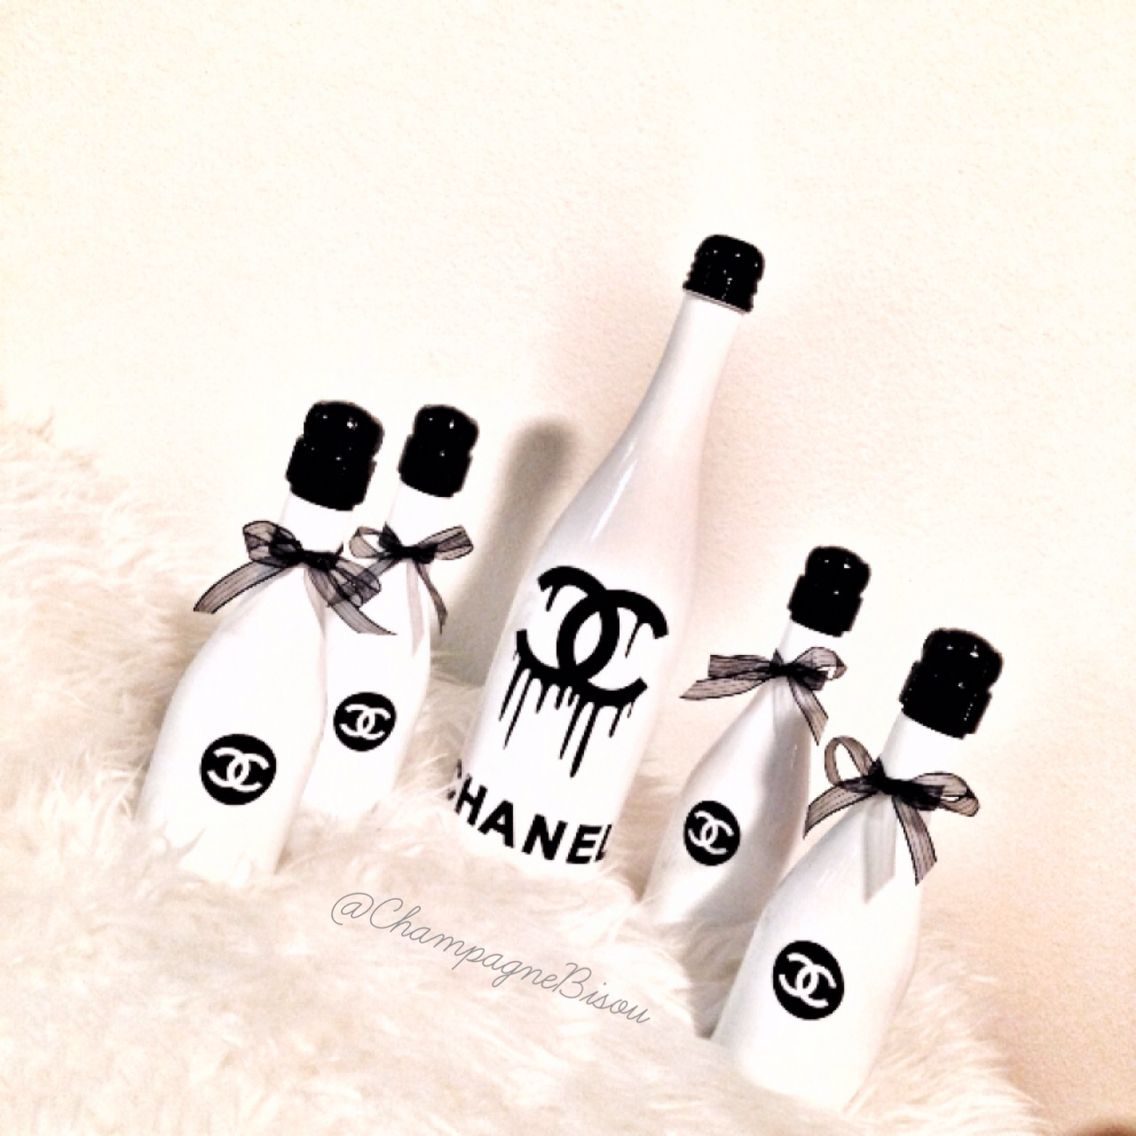 #Chanel themed champagne with mini Chanel Party Favors #ChanelTheme #cocochanel #chanelparty Contact to order: ChampagneBisou@gmail.com IG: ChampagneBisou #champagne#weddingchampagne#partyfavors#bubbly#gift#holiday#christmas#newyears#newyearsparty#beverlyhills#hostessgift#champagnegift#glamorous#luxury#champagnebisou